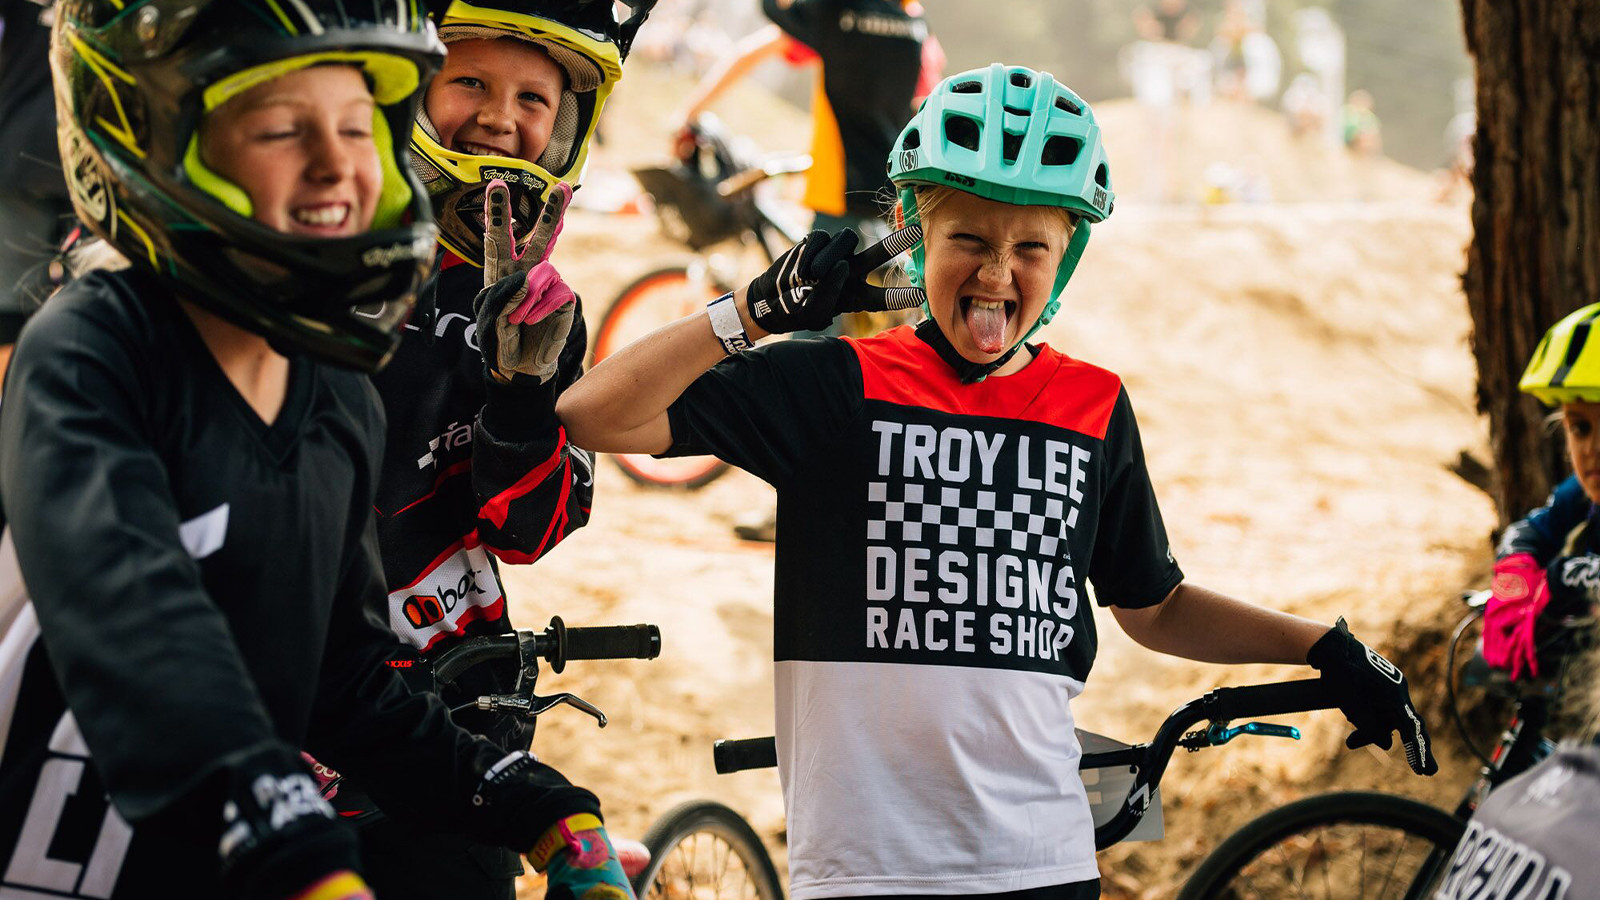 Crankworx Announces New Youth Focused Event Categories